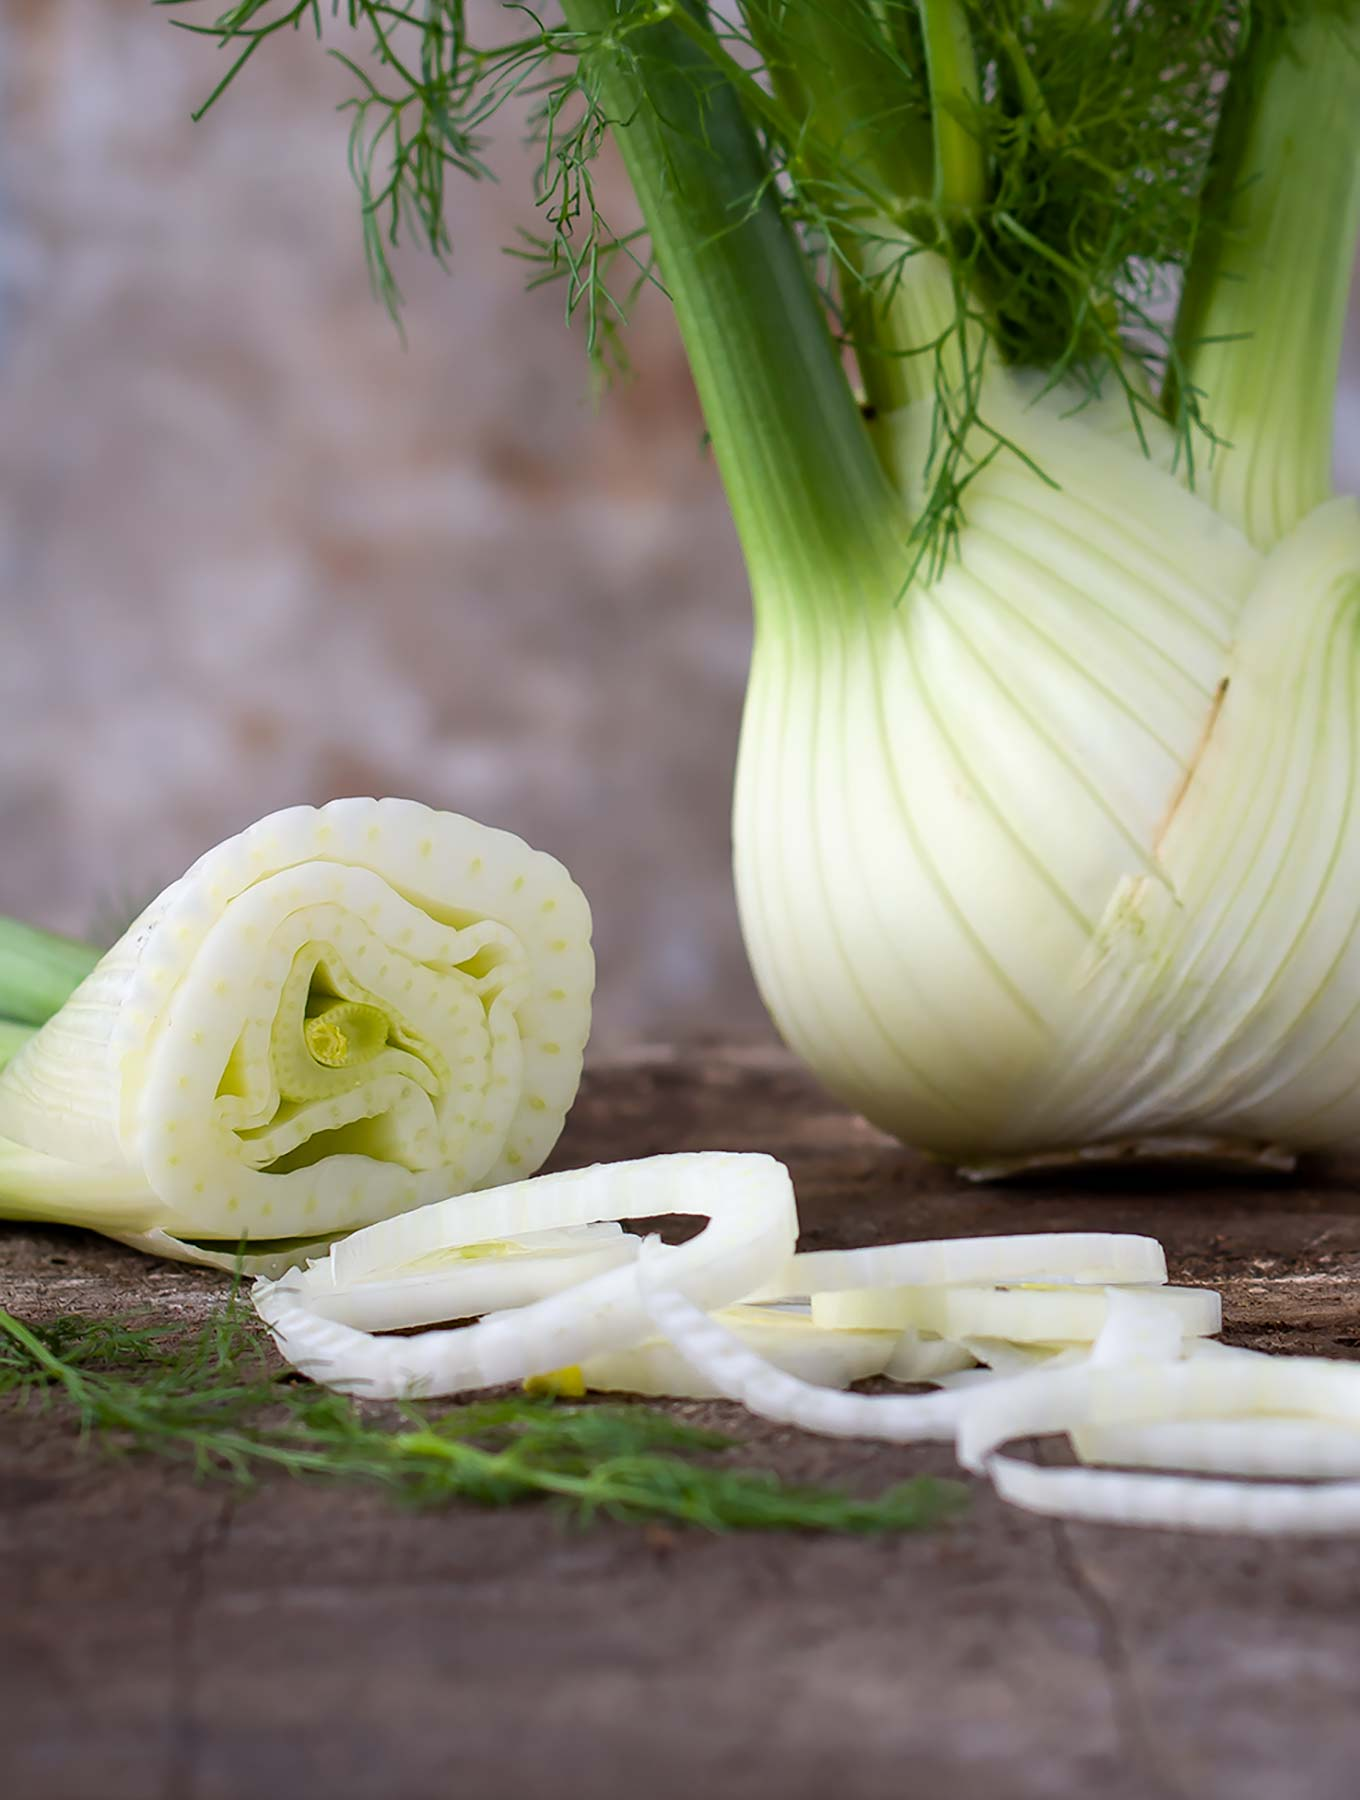 Cut up fennel on a wooden surface